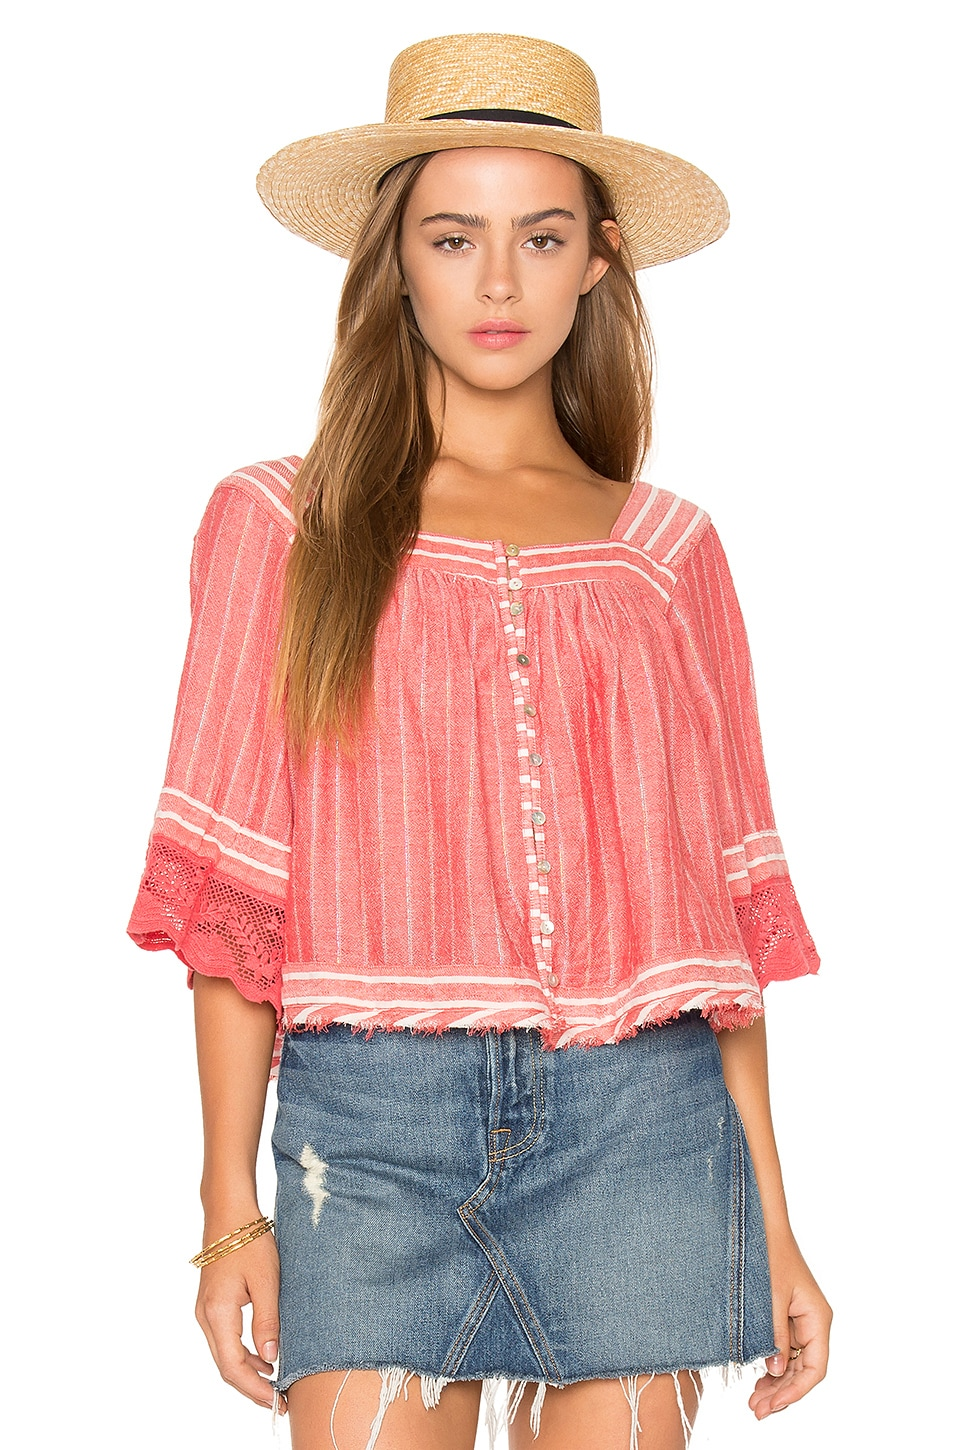 See Saw Top by Free People